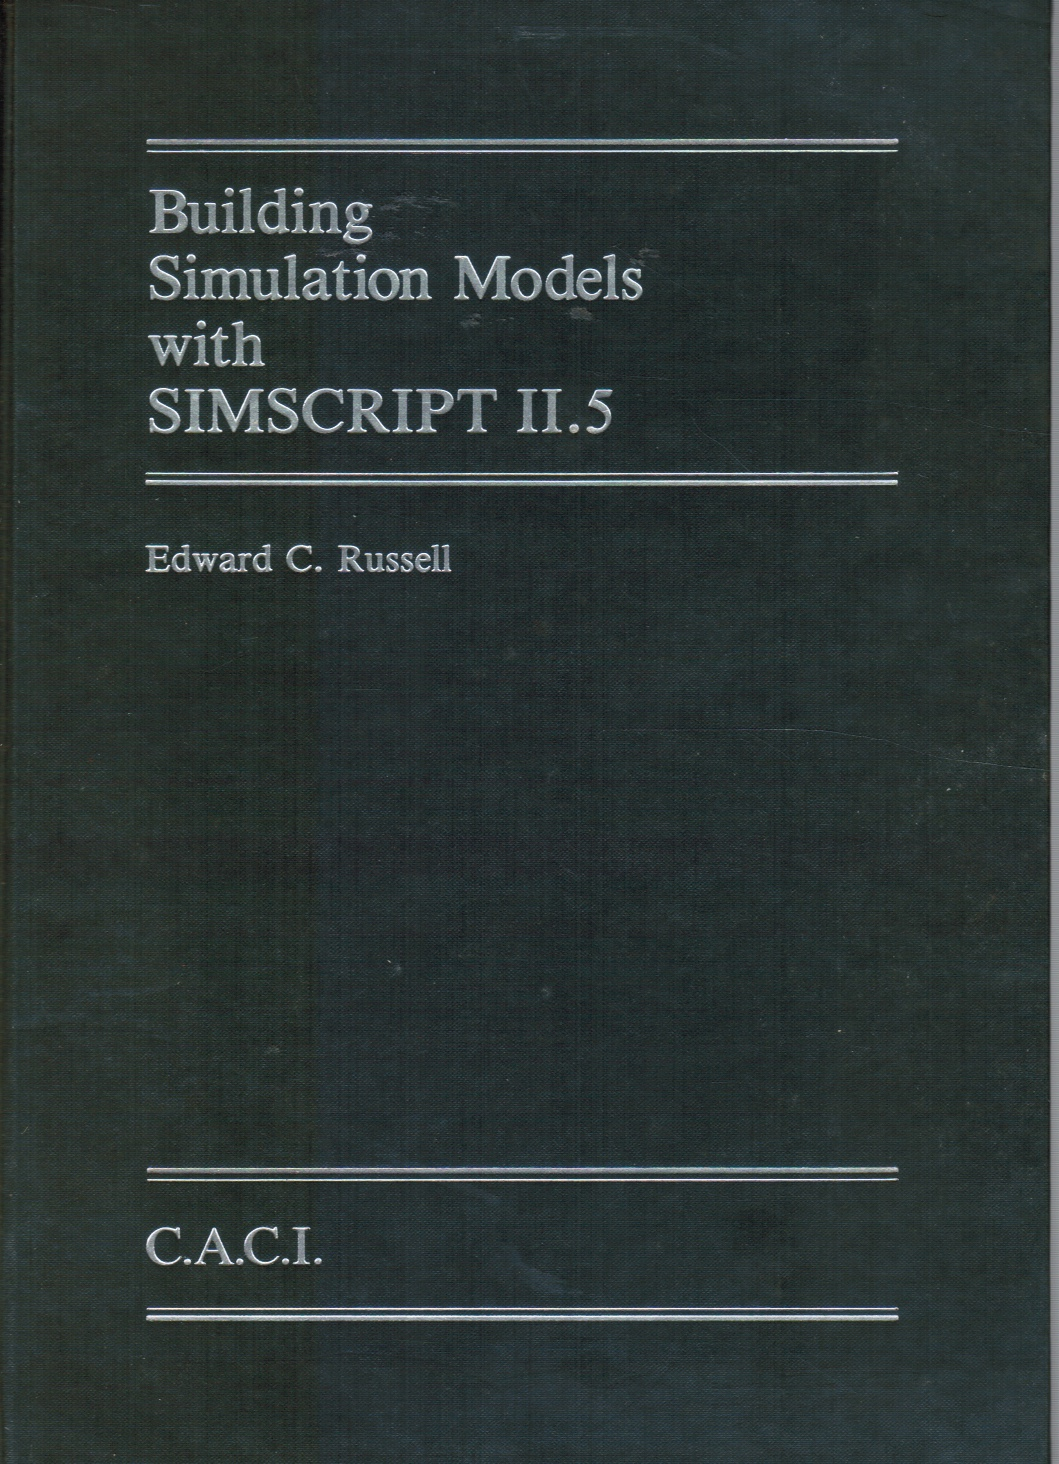 Image for Building Simulation Models with SIMSCRIPT II.5